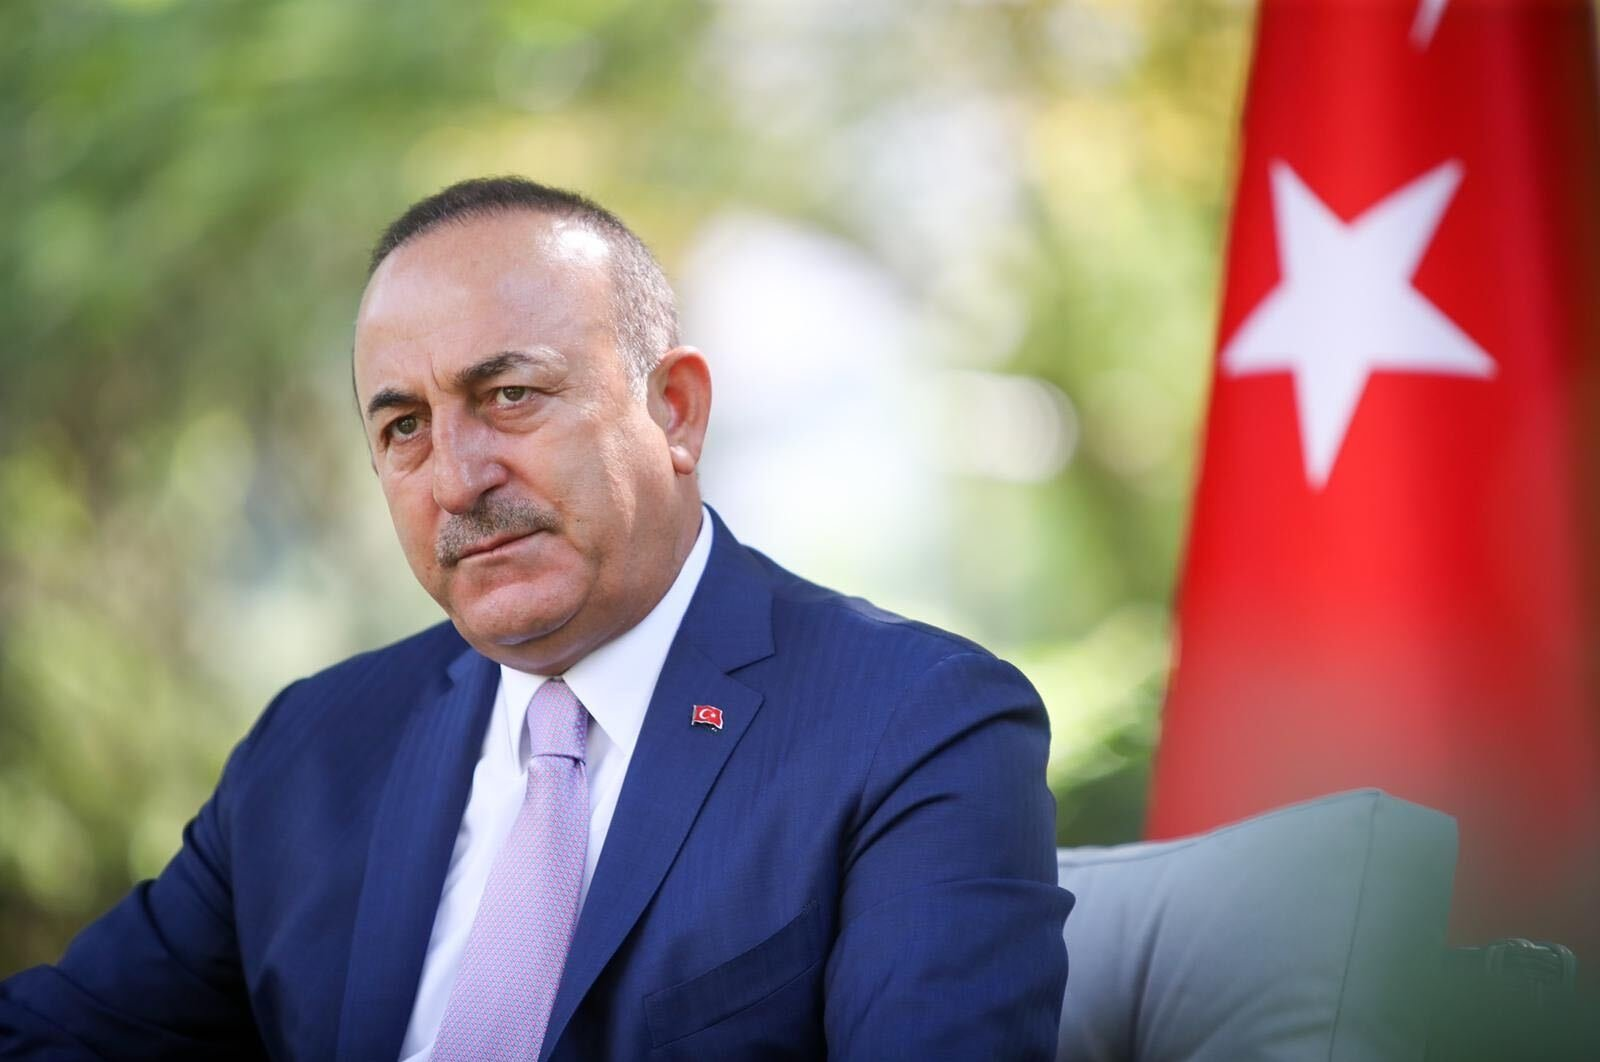 Foreign Minister Mevlüt Çavuşoğlu listens during an interview with Daily Sabah Ankara Representative Nur Özkan Erbay, Ankara, Turkey, Sept. 2, 2020. (Courtesy of the Foreign Ministry)